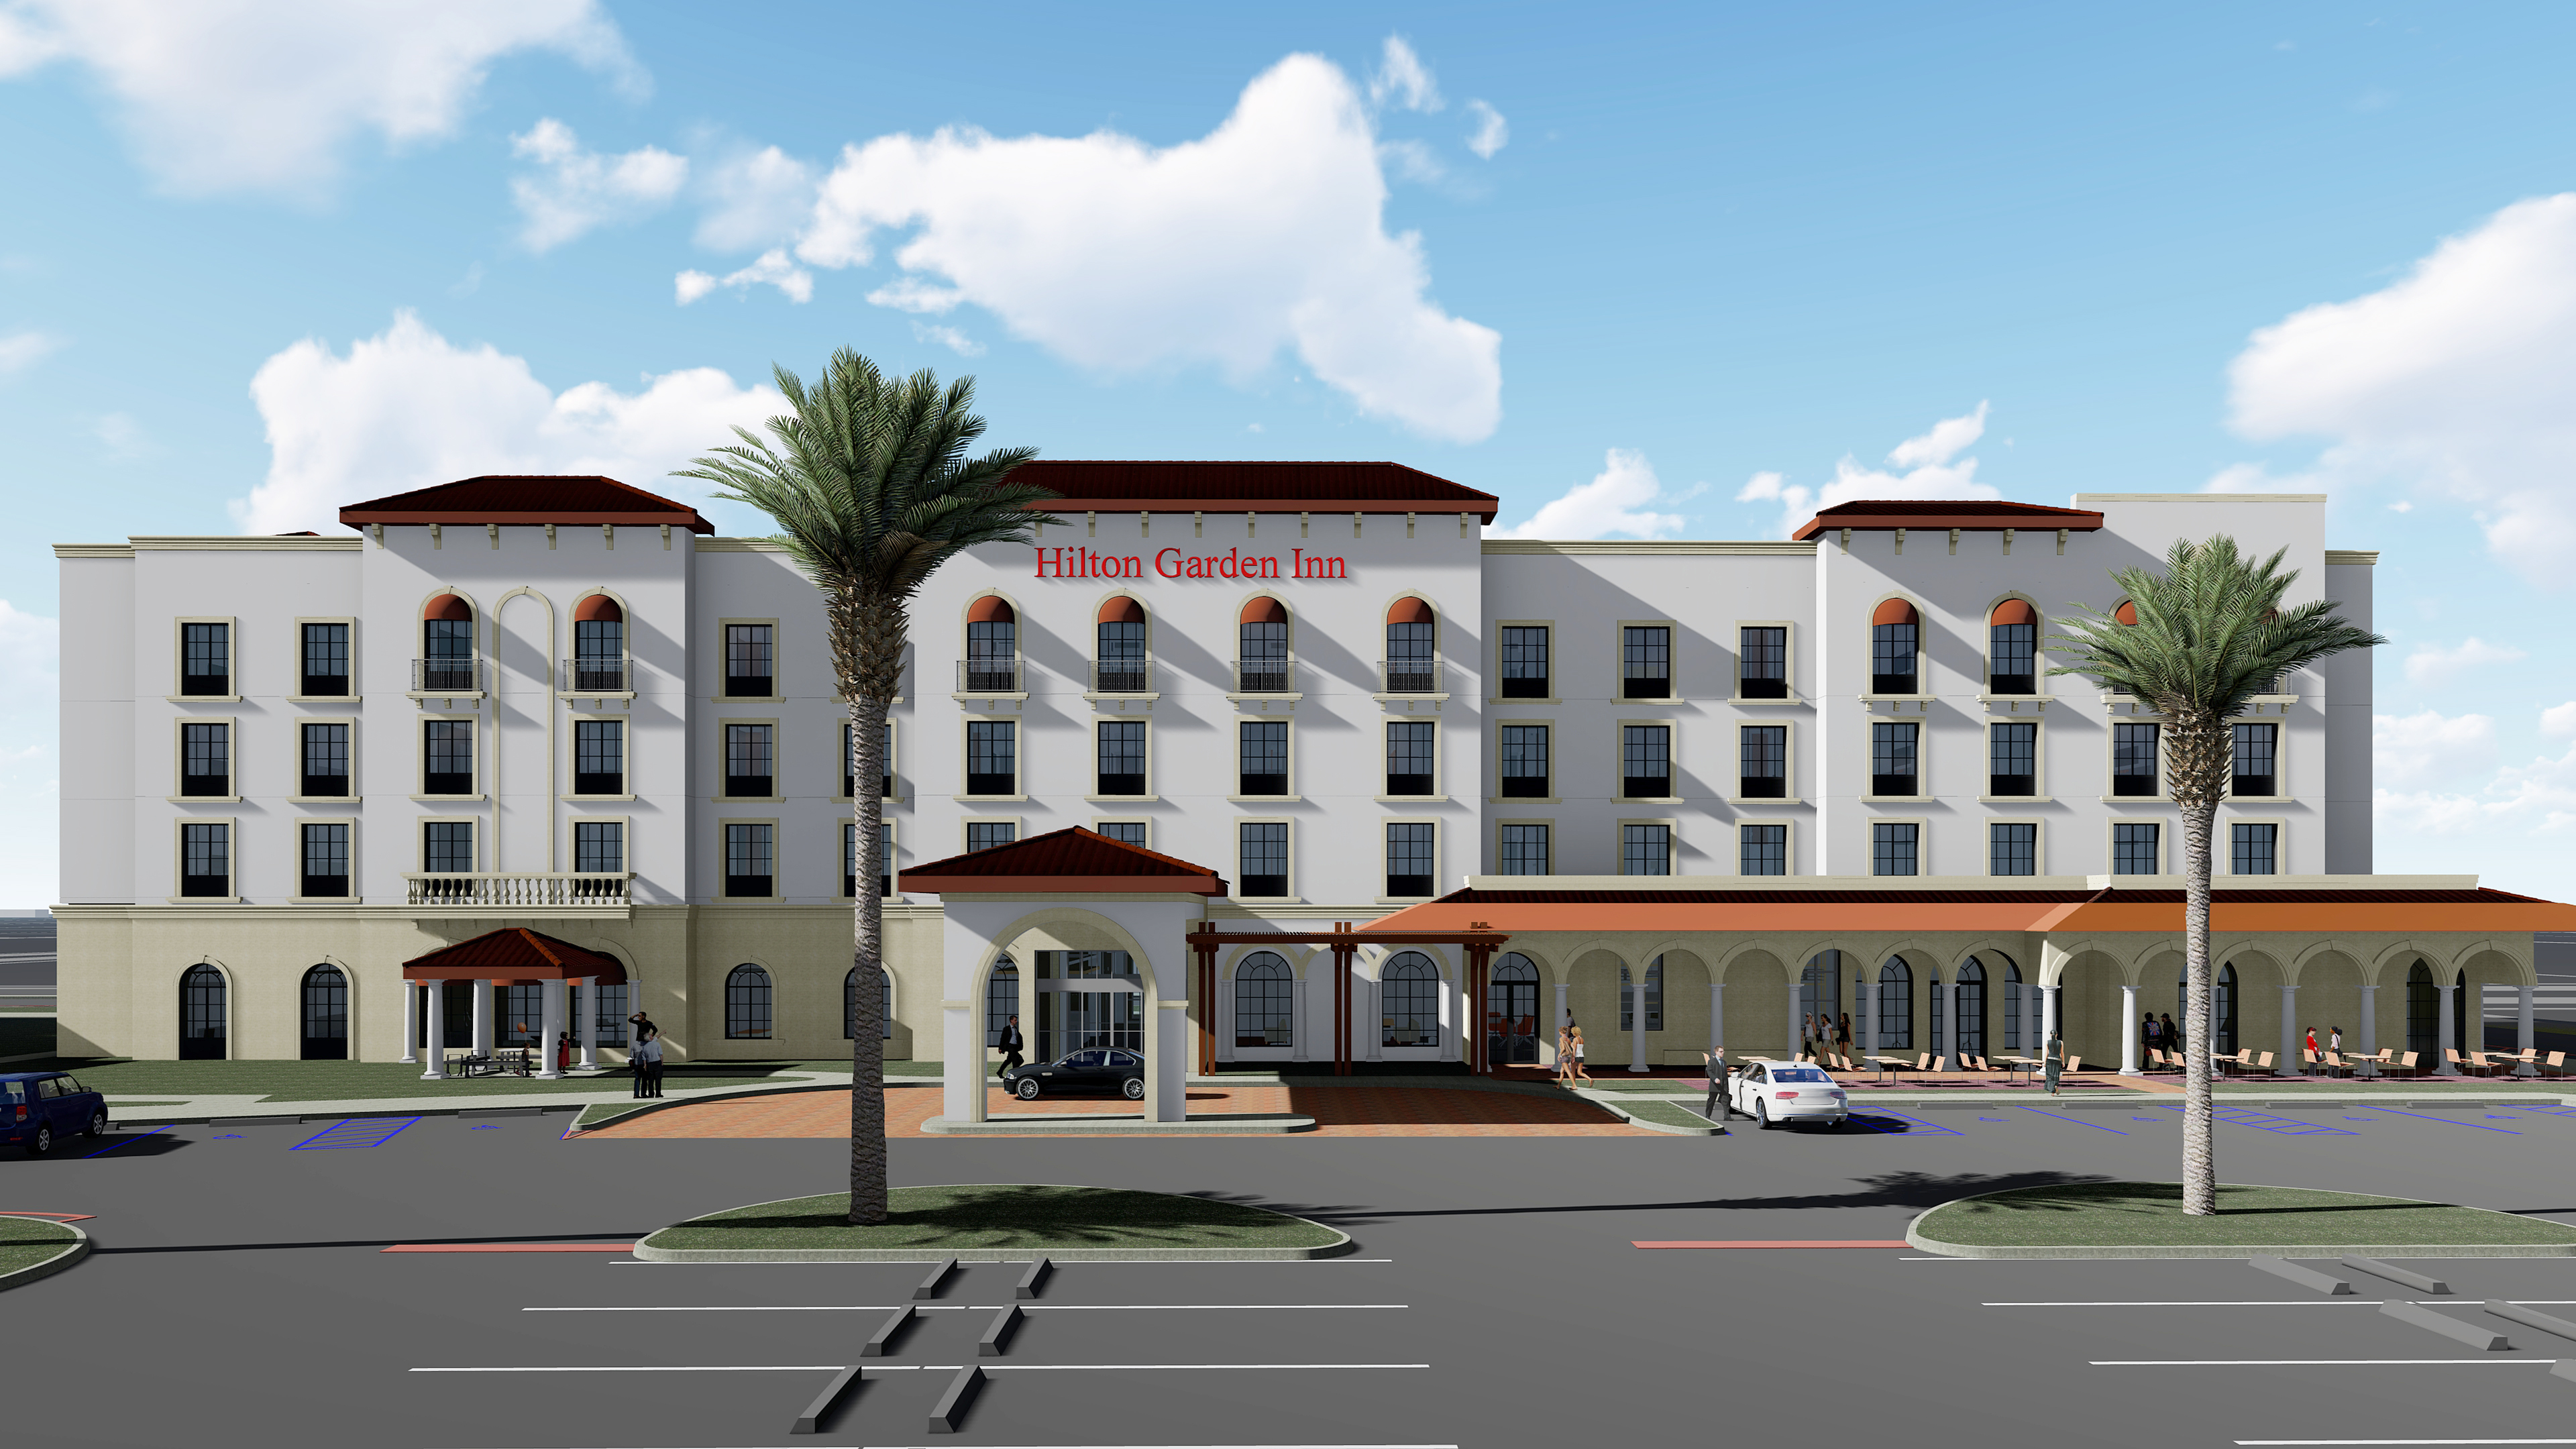 Hilton Garden Inn Coming To Ravaudage Development Bungalower